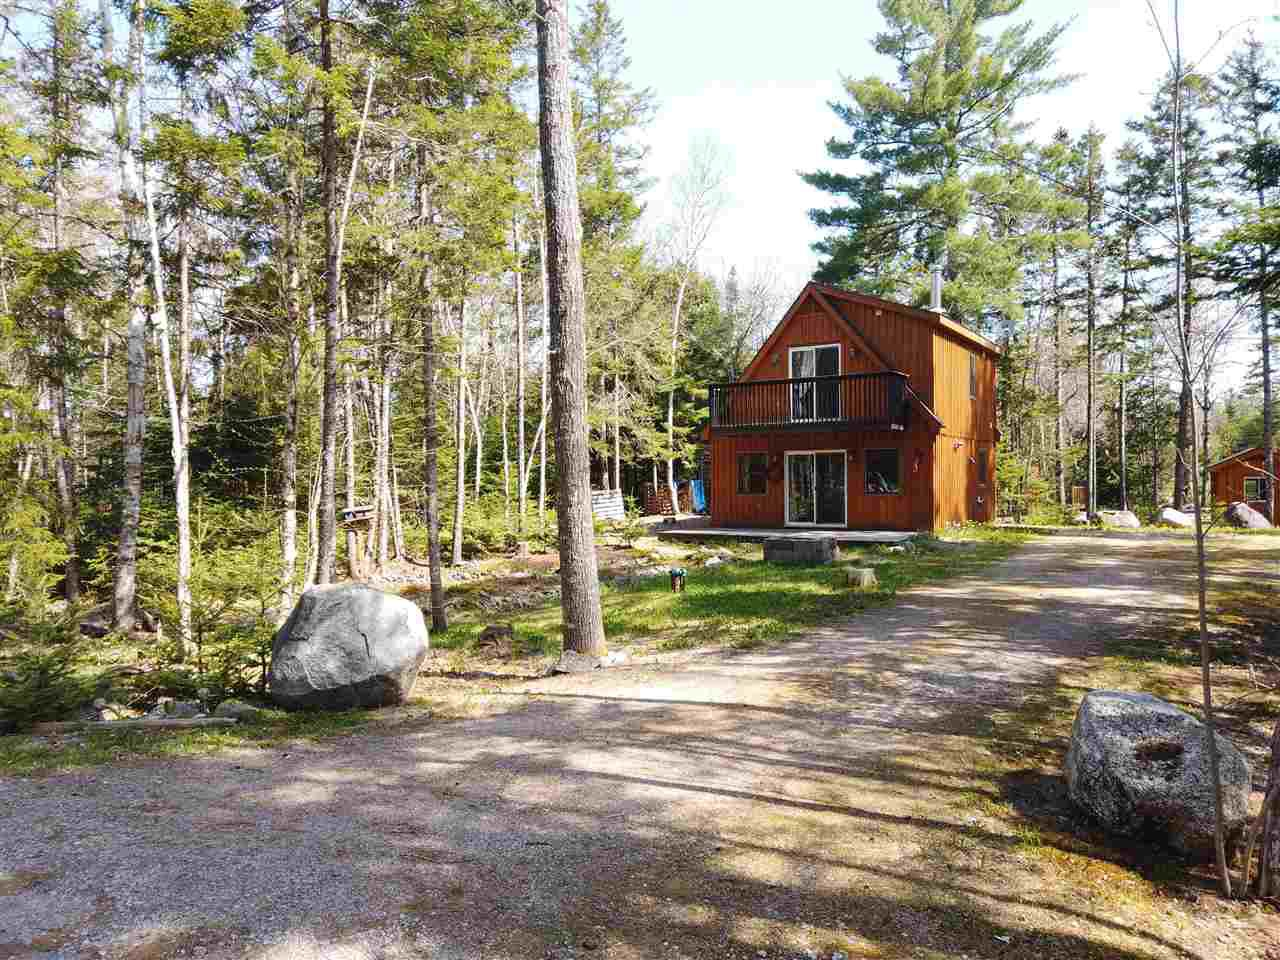 Main Photo: 44 21 FALCON Drive in Vaughan: 403-Hants County Residential for sale (Annapolis Valley)  : MLS®# 202004878